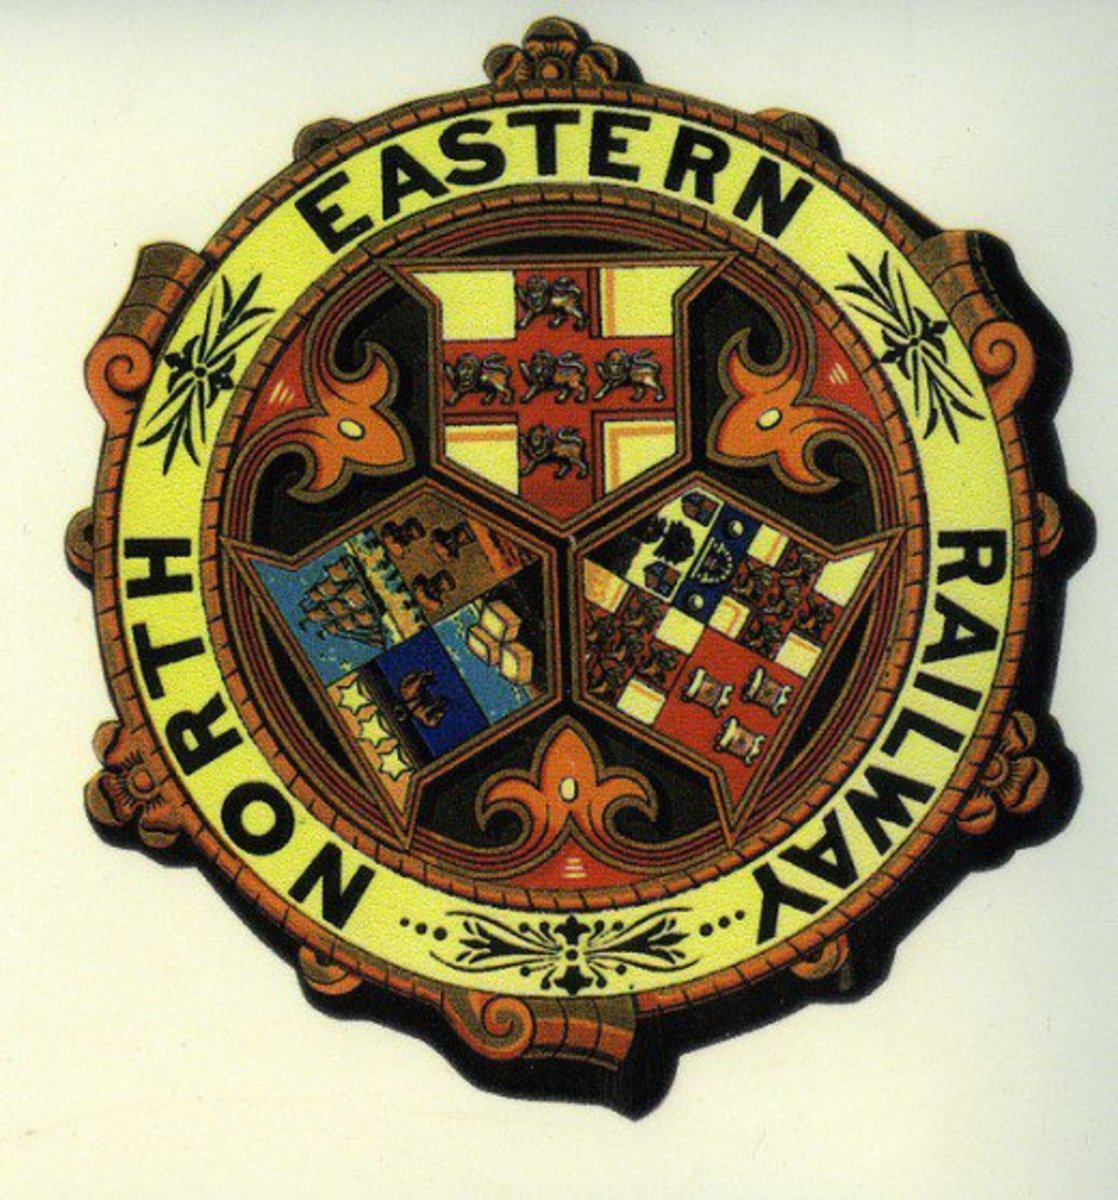 The North Eastern Railway, itself an amalgam of York & North Midland Railway, Leeds Northern Railway and York Newcastle & Berwick Railway - in time to be swept aside in 1923 by ...